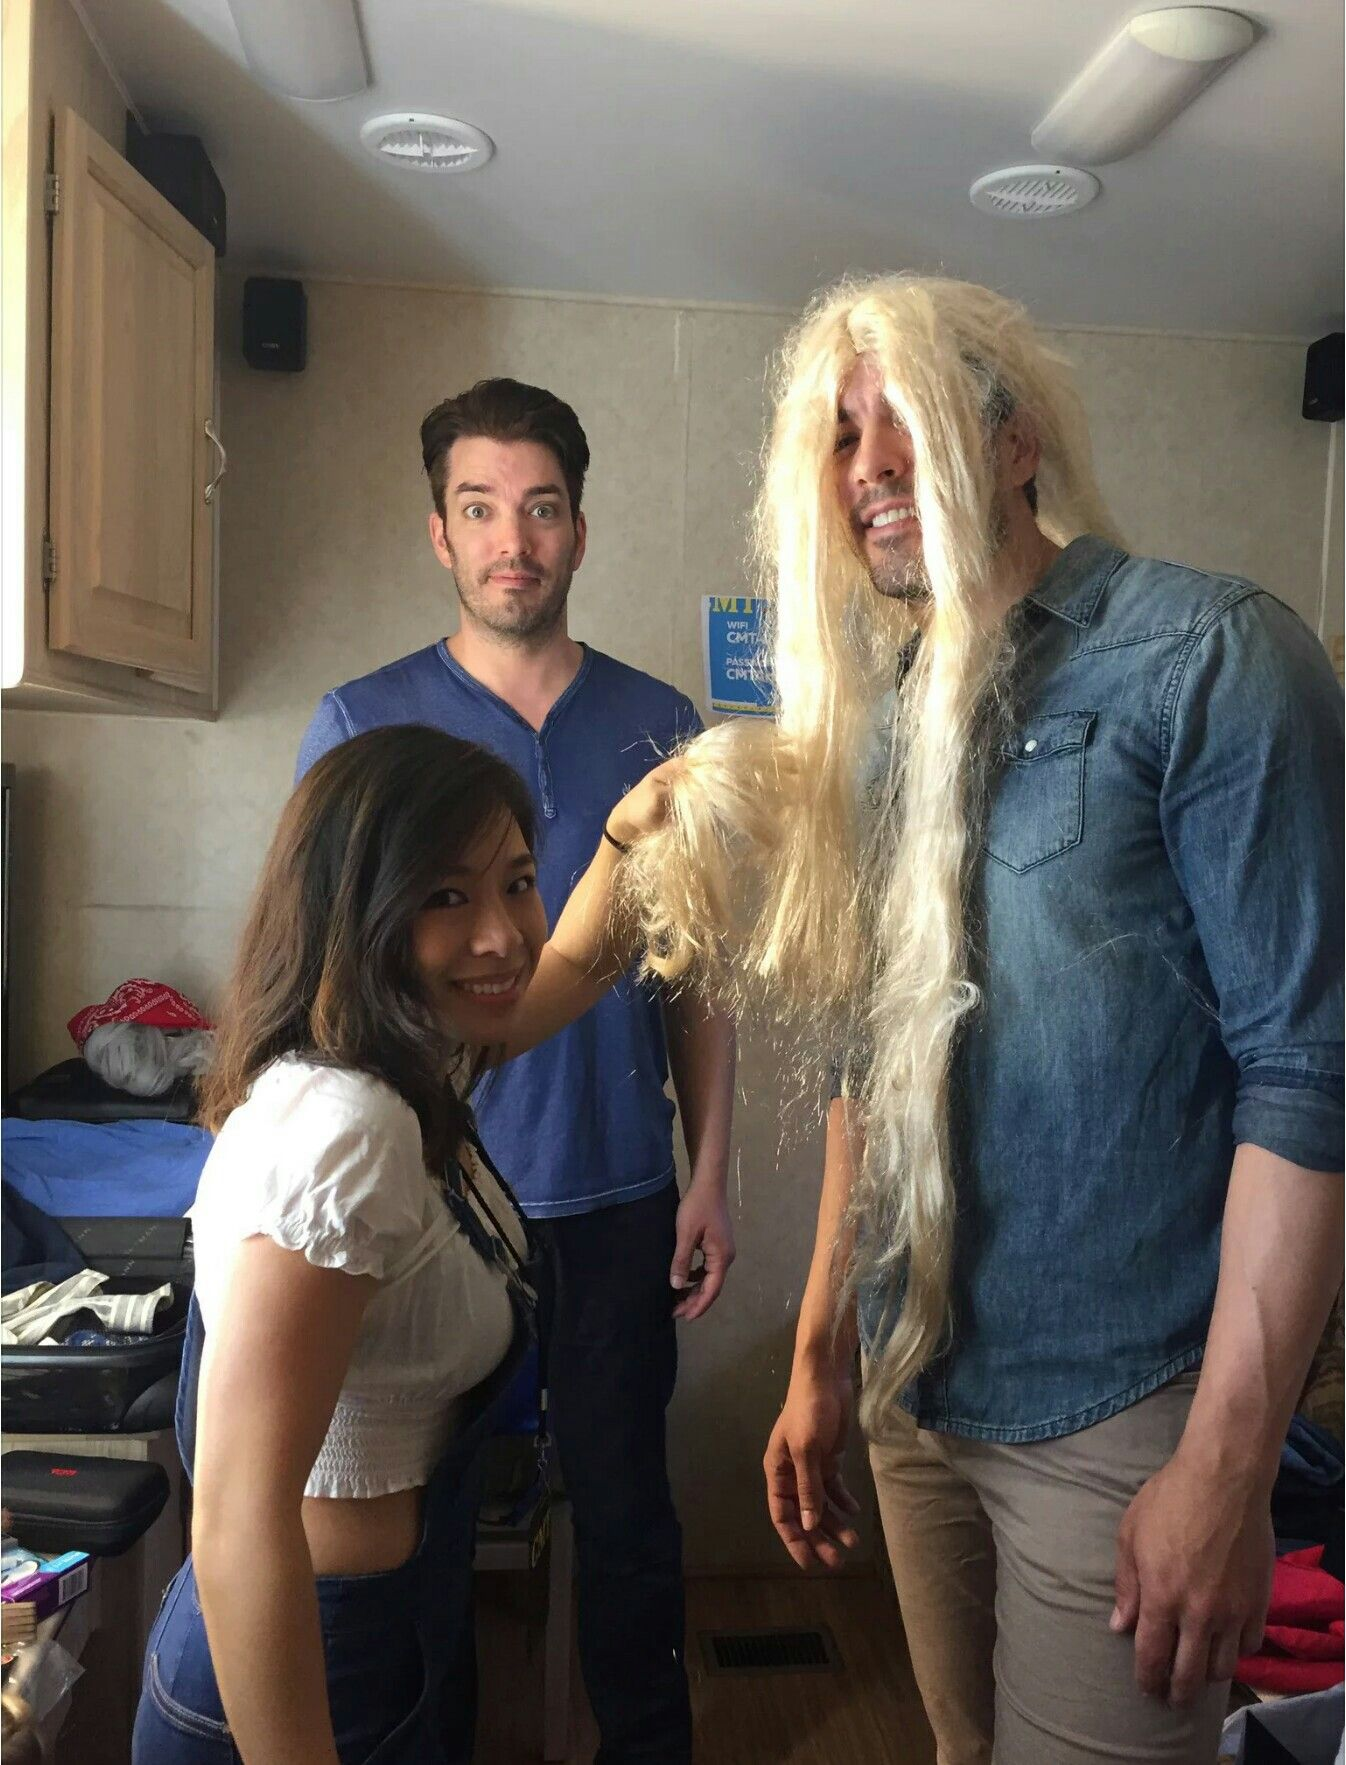 the scott brothers, jonathan & drew (in the blonde wig) prepping to